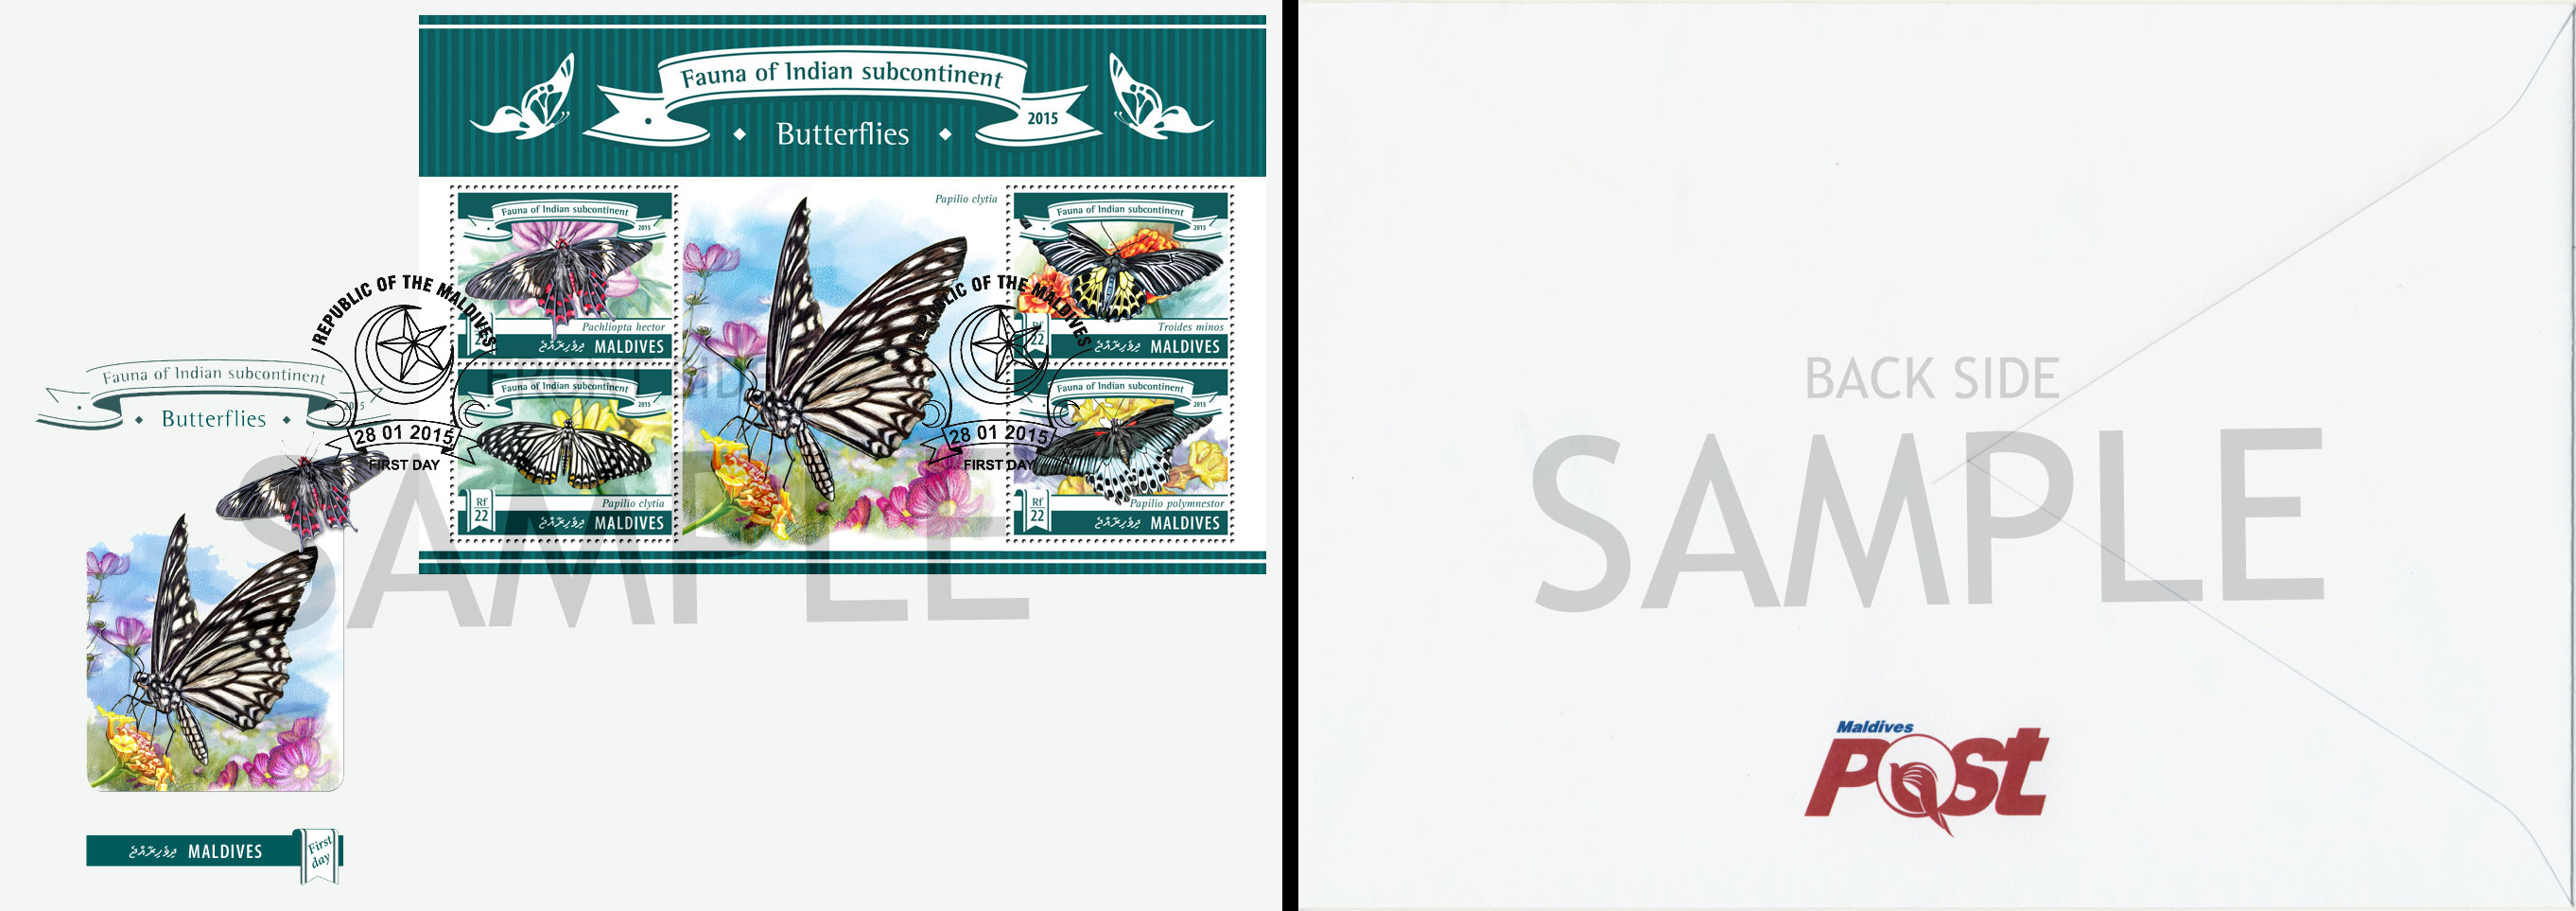 FDC sample - Issue of Maldives postage stamps